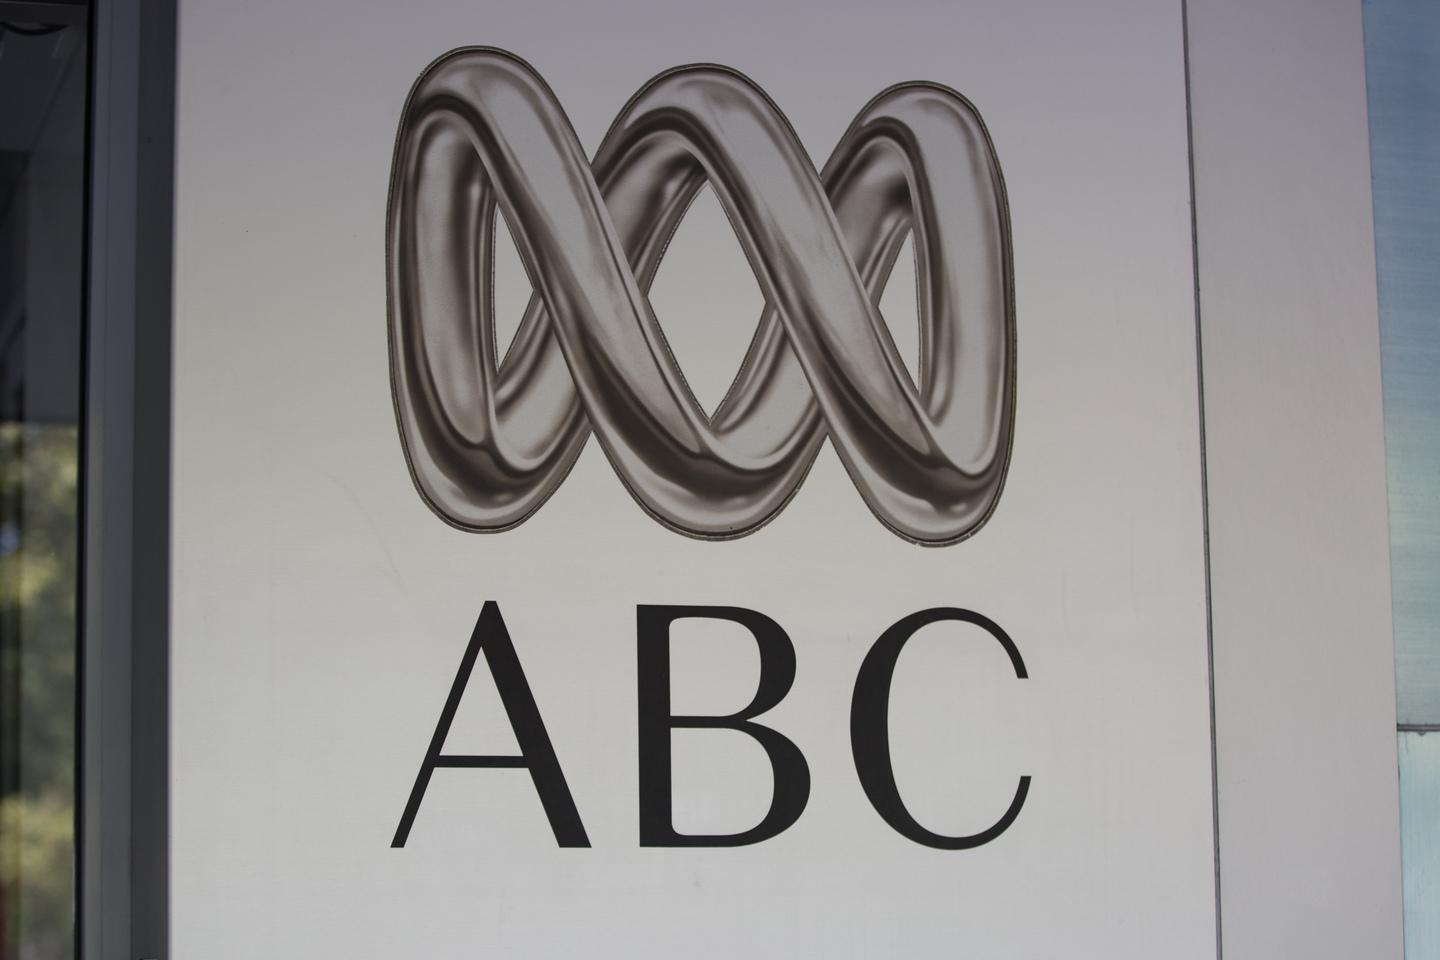 Lack of future funding clarity blights ABC